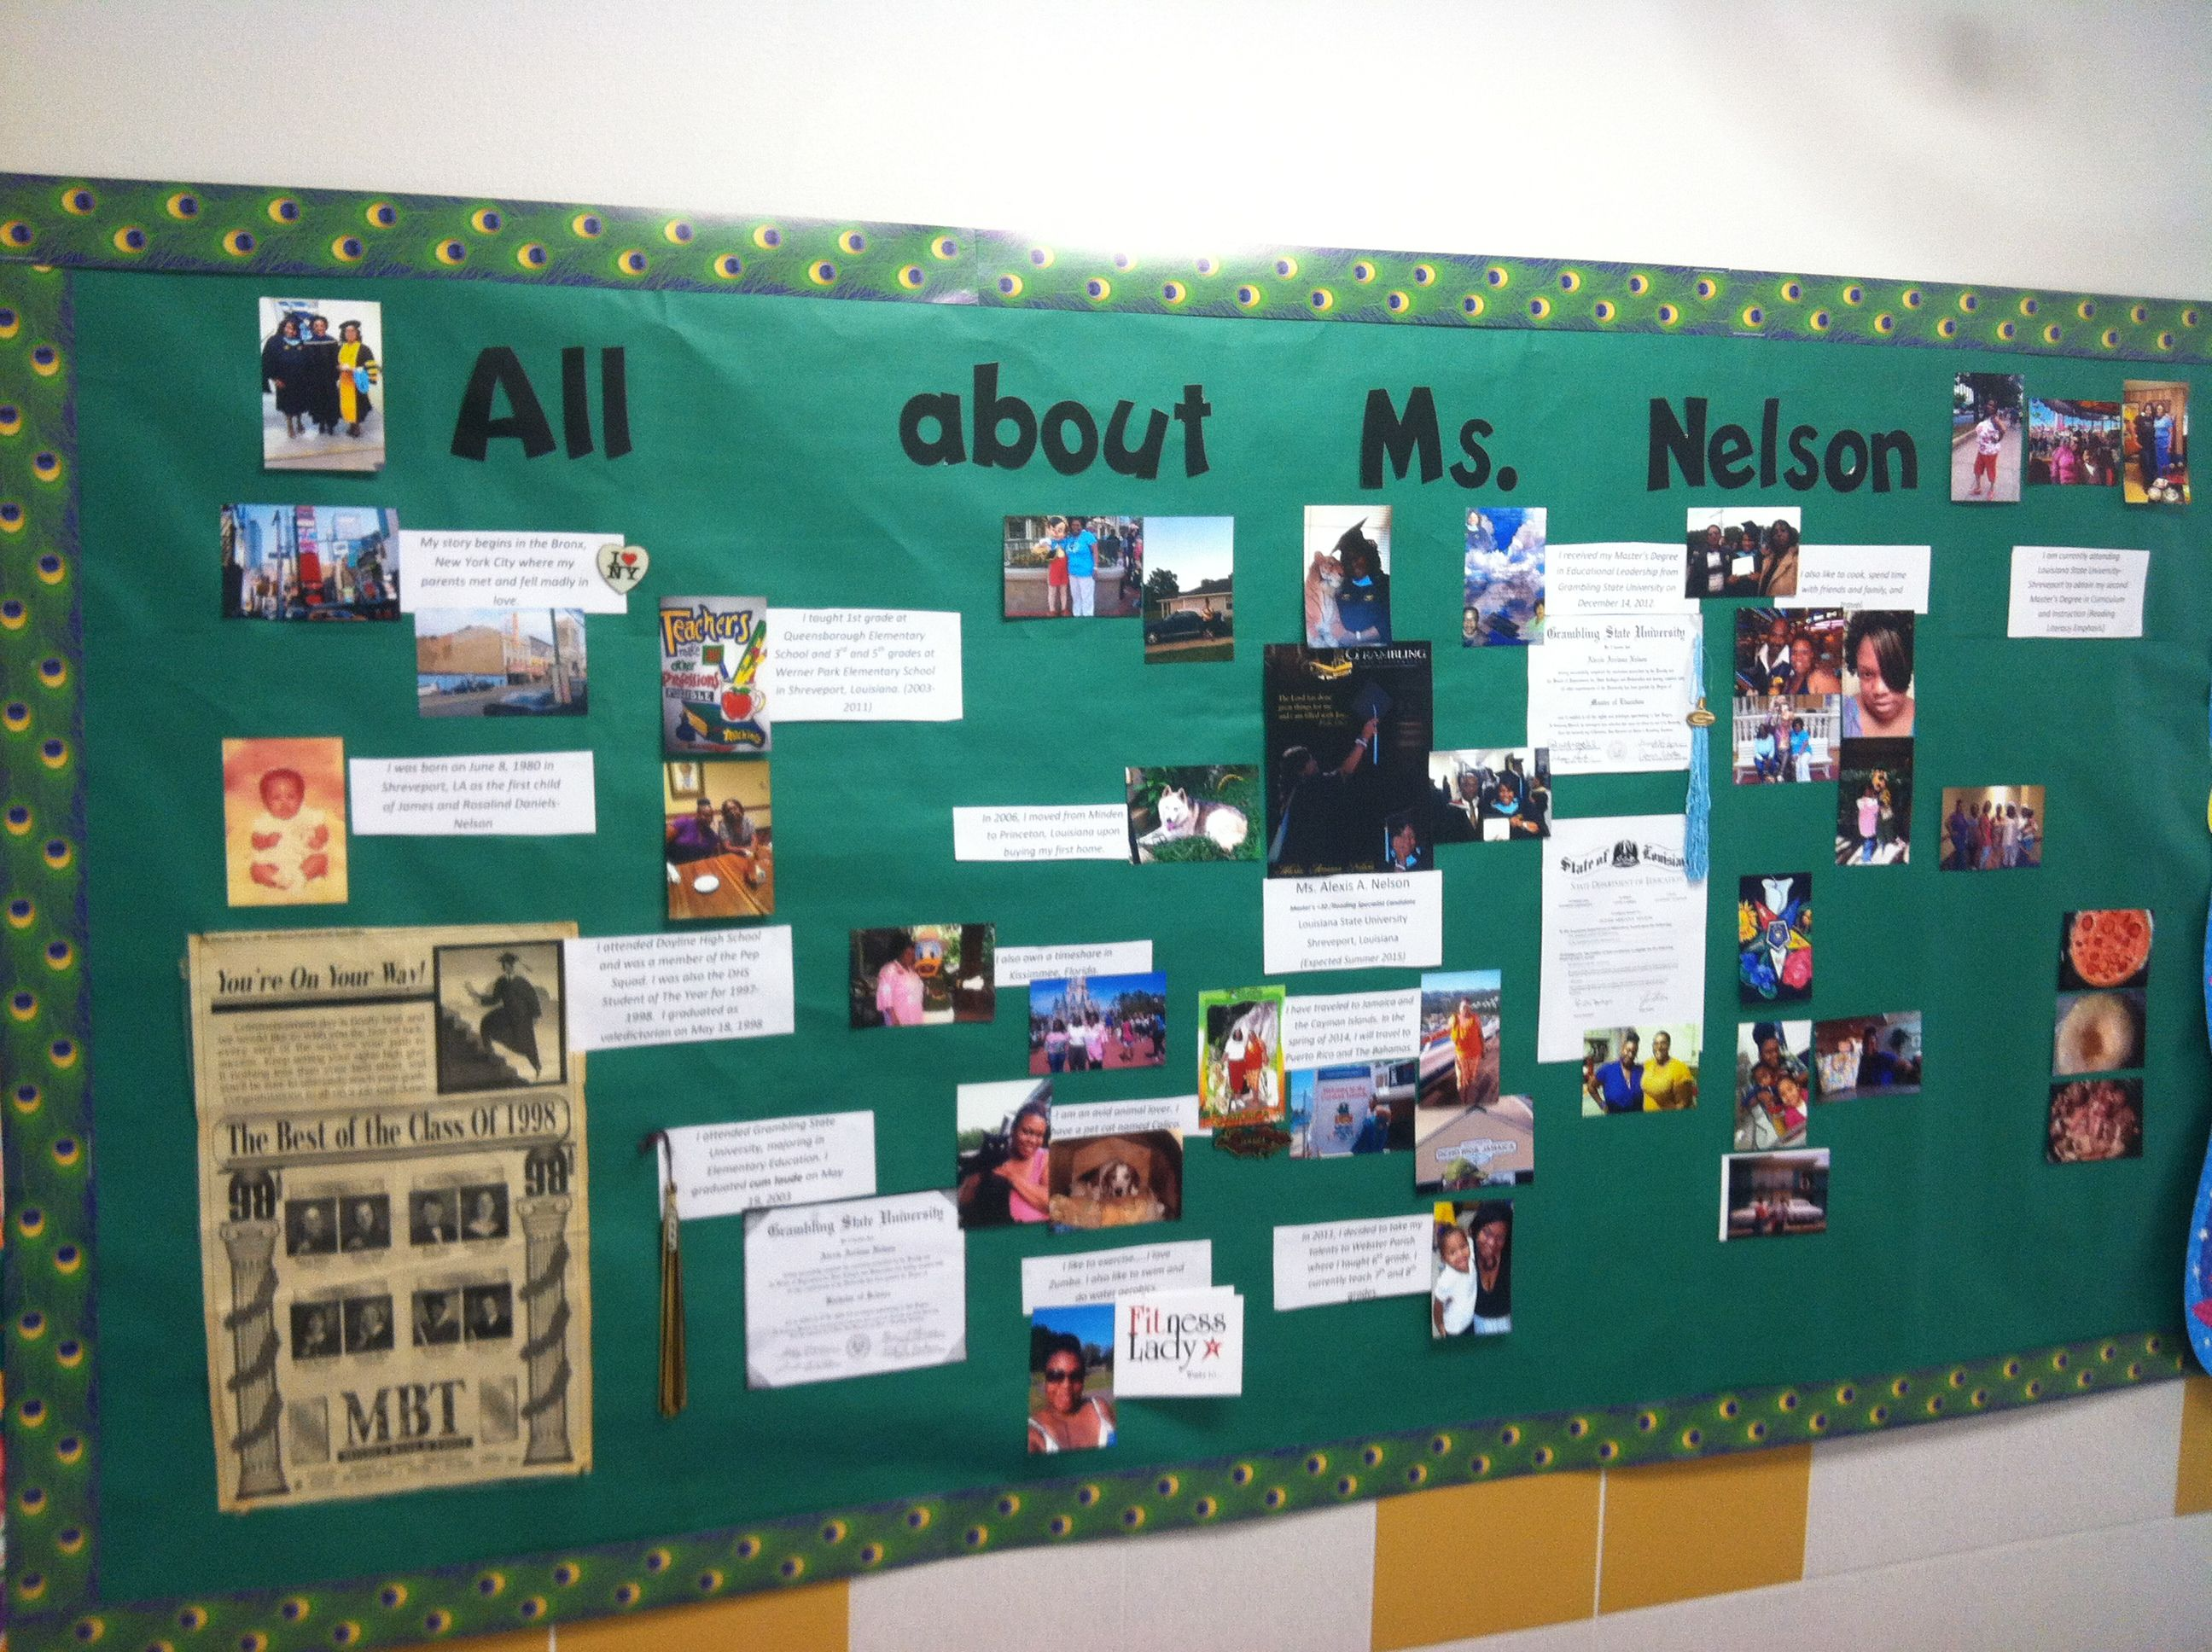 All about me board!